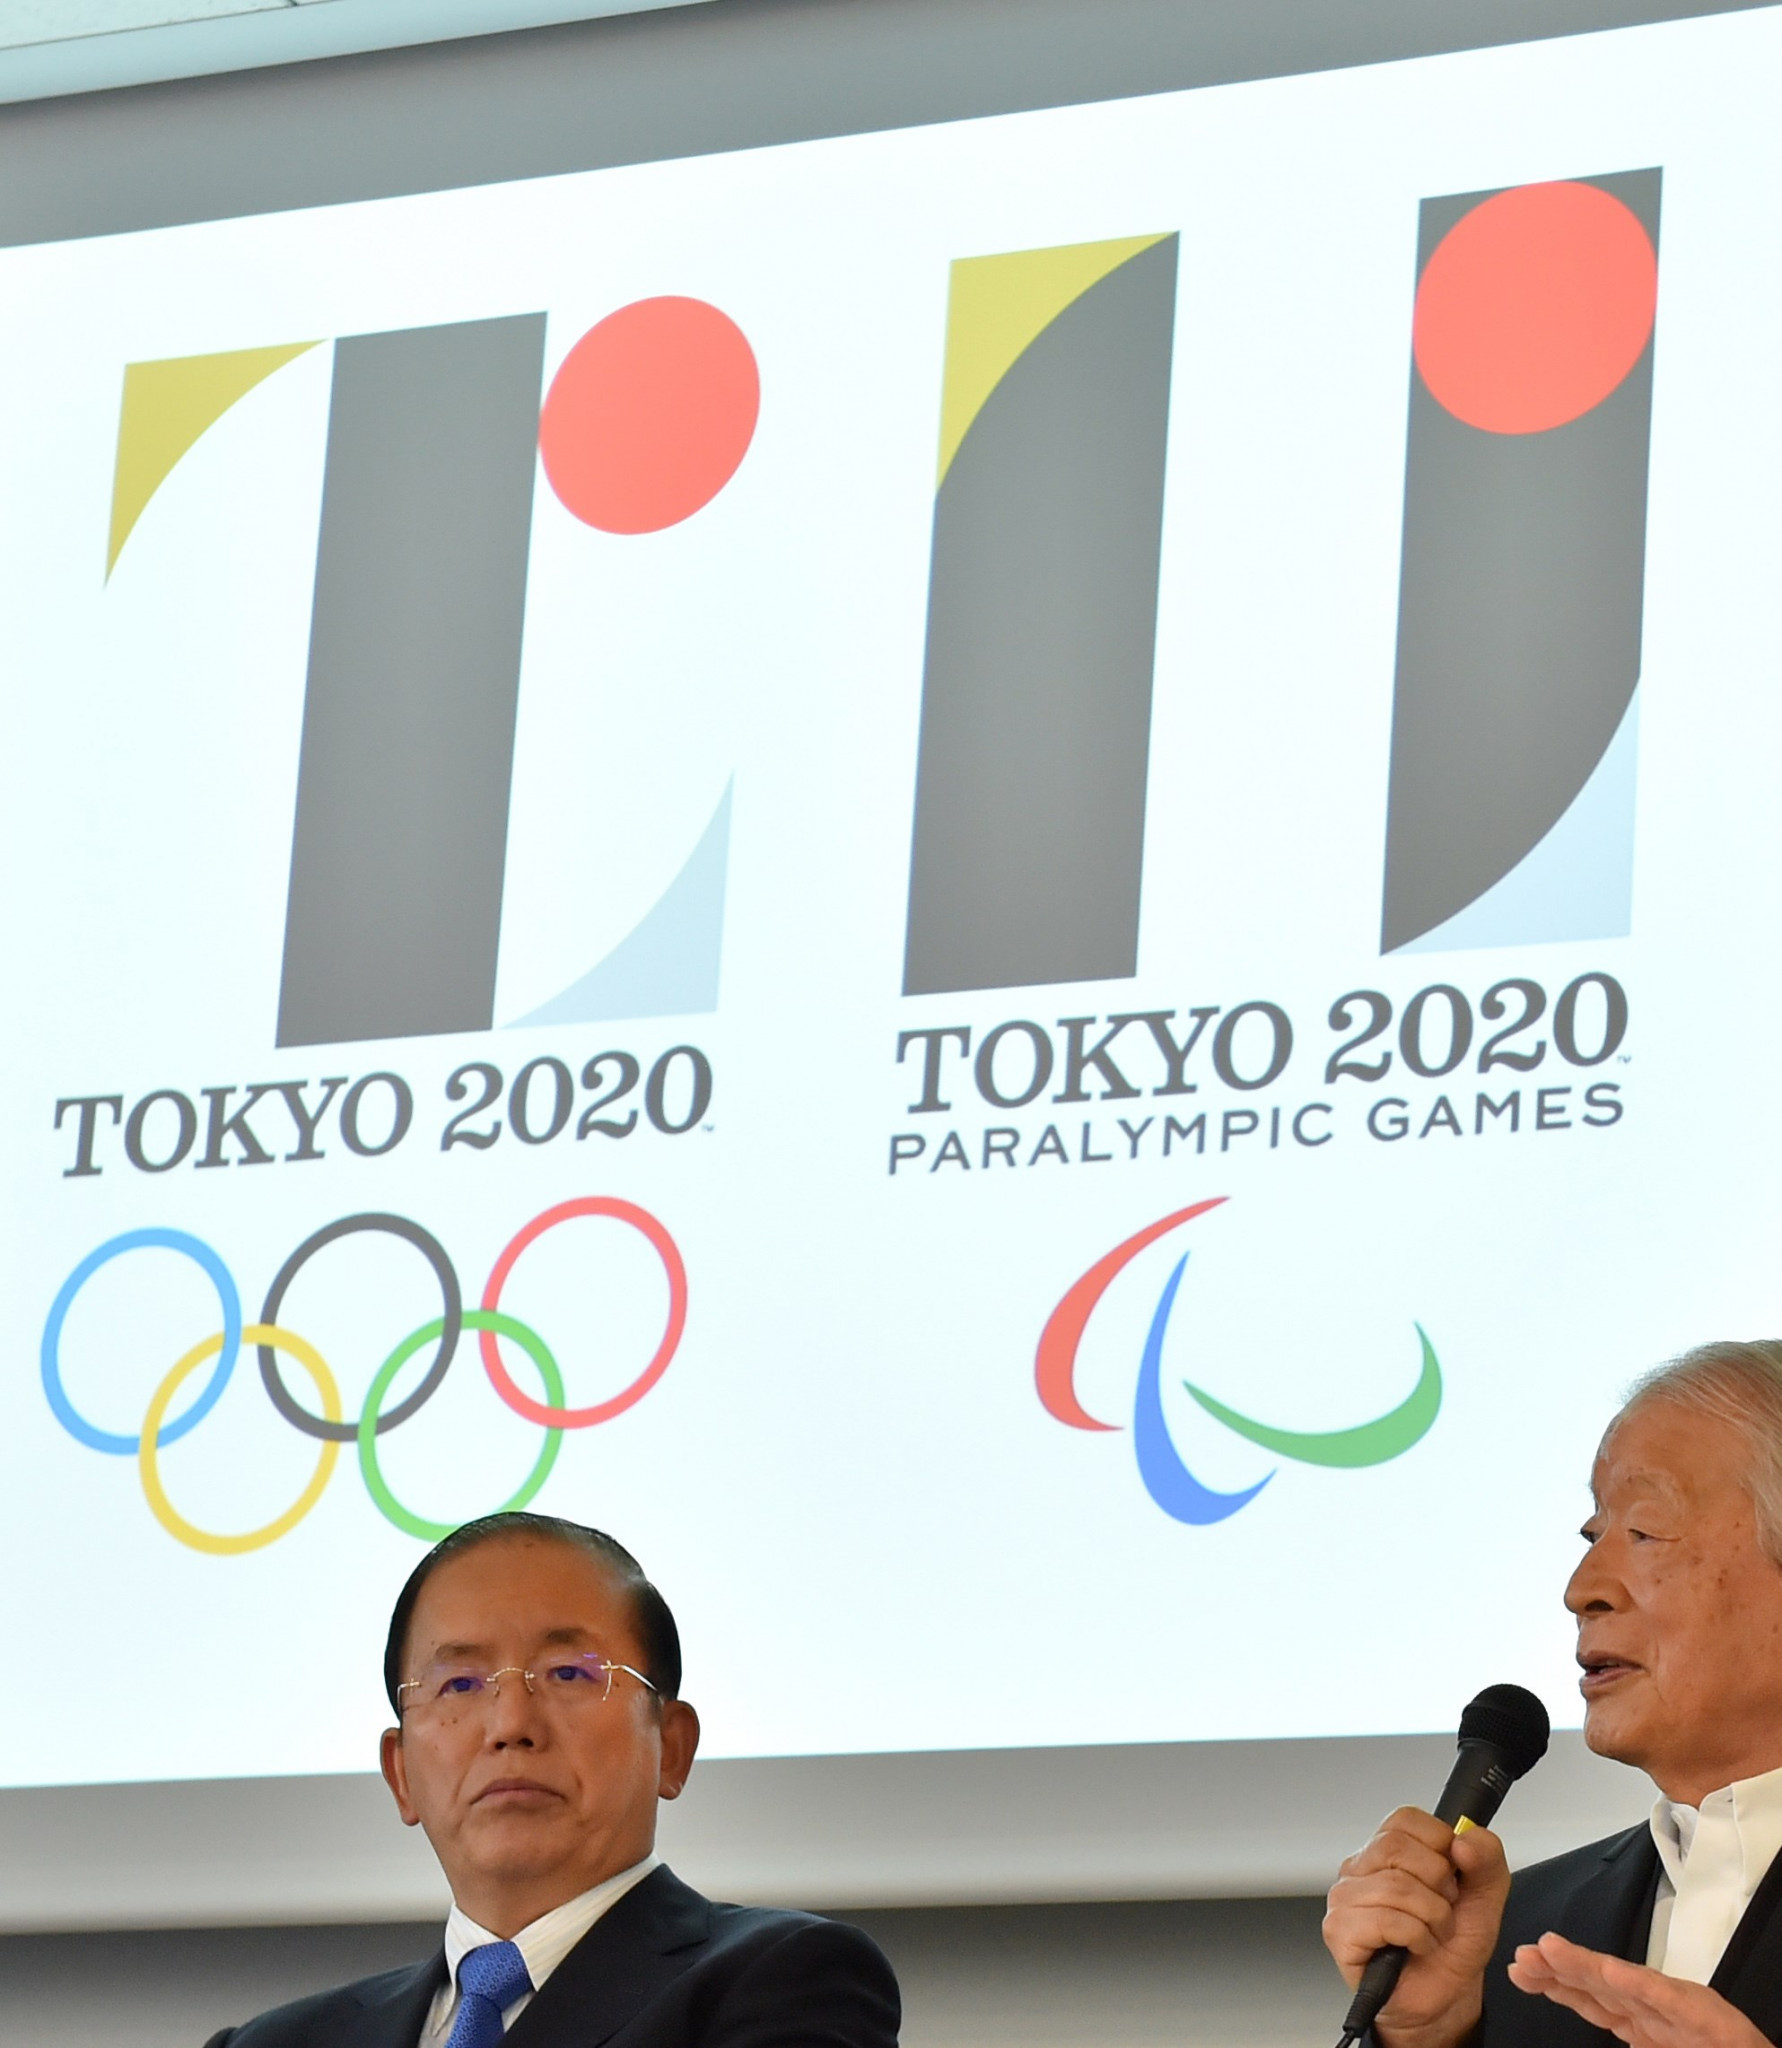 Tokyo 2020 hope Paralympics can make Japan more accessible place